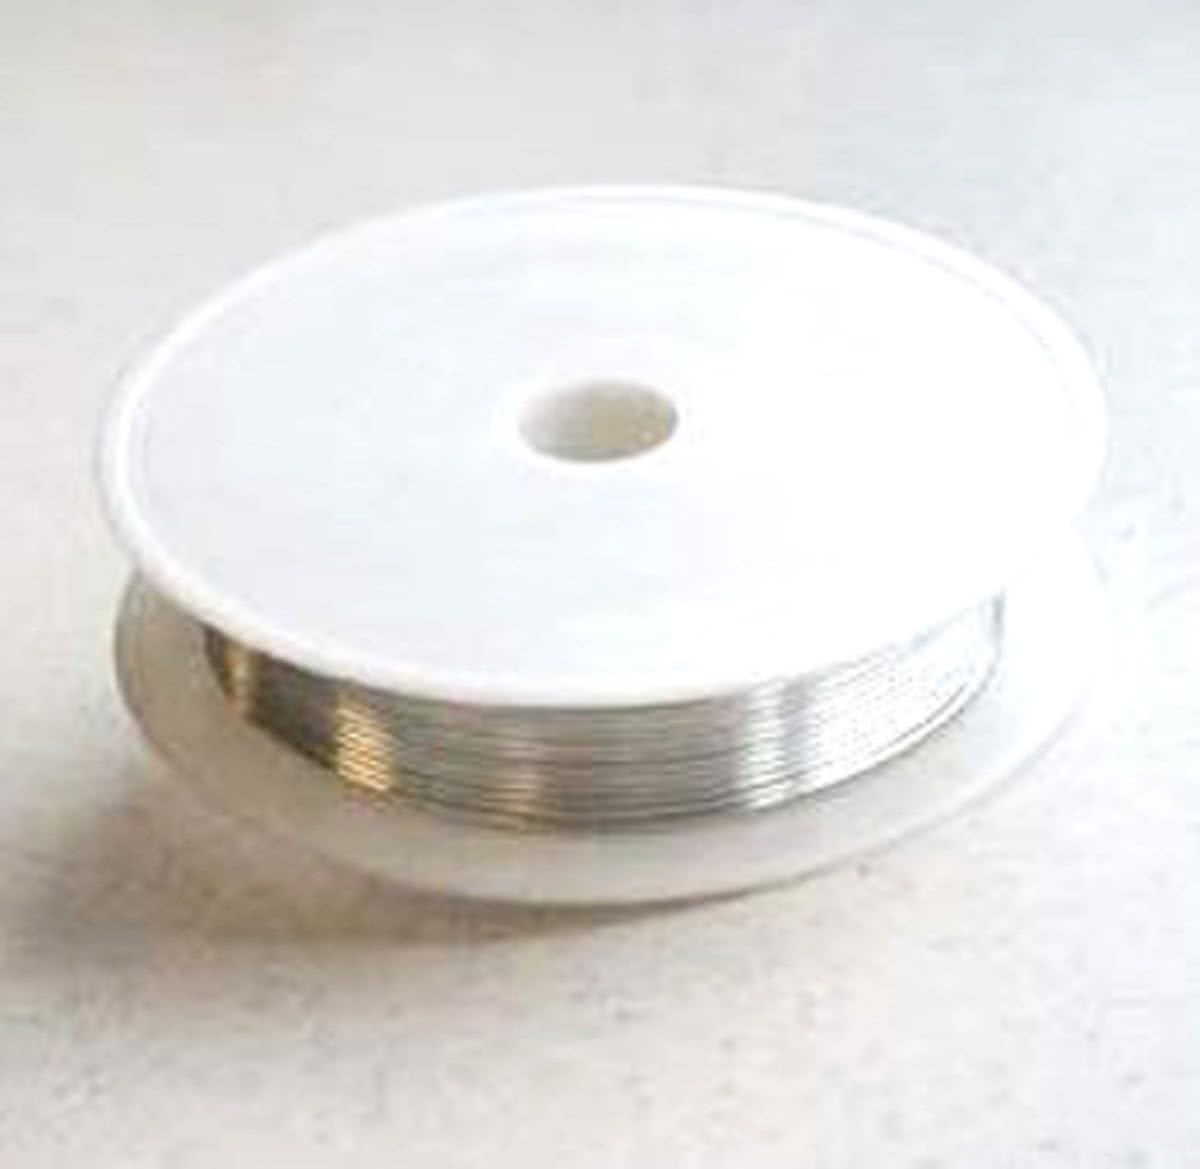 4 Sets Draad Silver-plated copper - Zilver - 0,8mm x 3meter